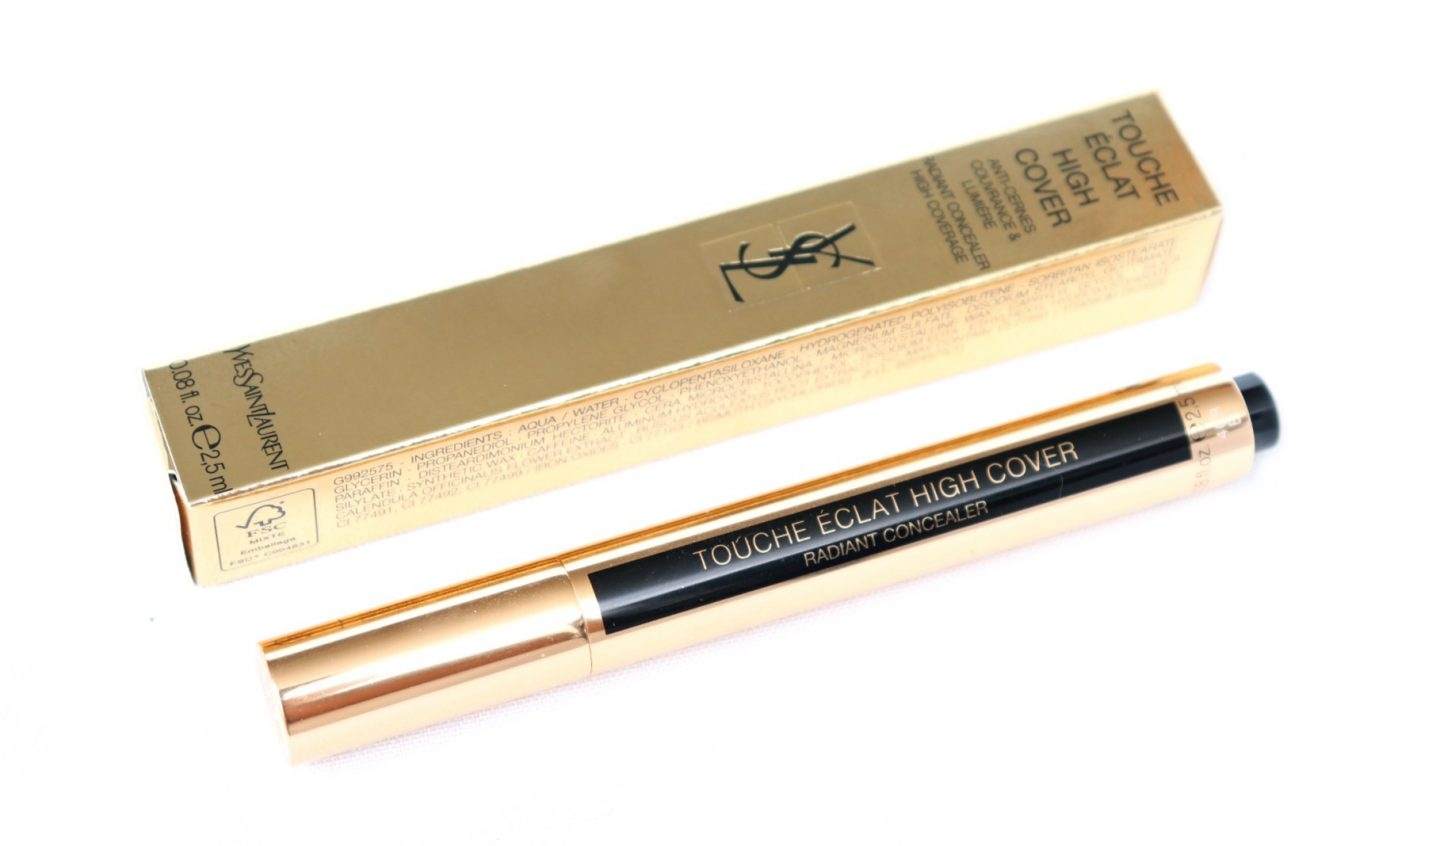 YSL Touche Éclat High Cover Radiant Concealer